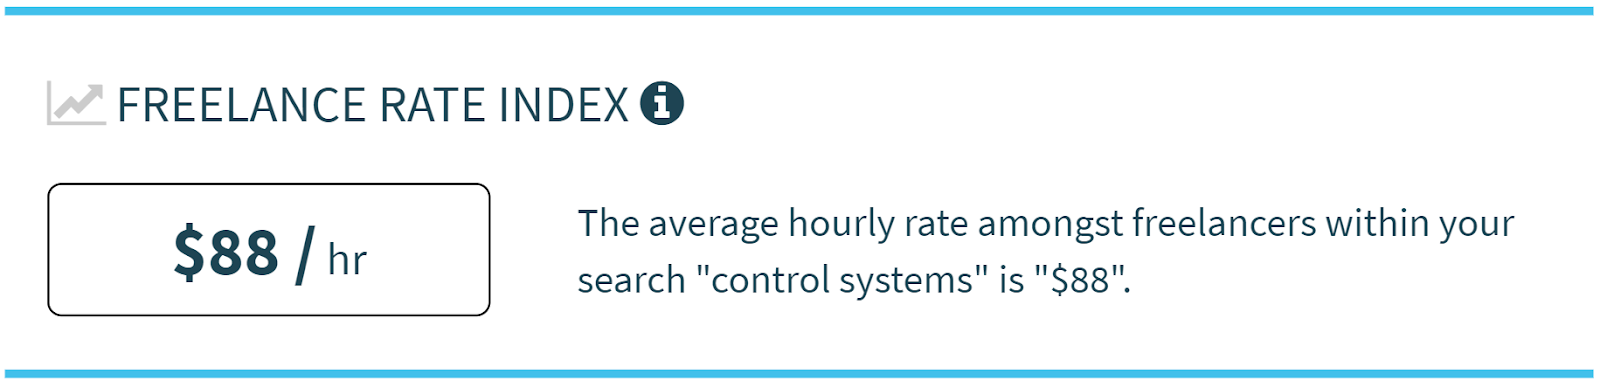 Average Freelance Rate of a Control Systems Engineer